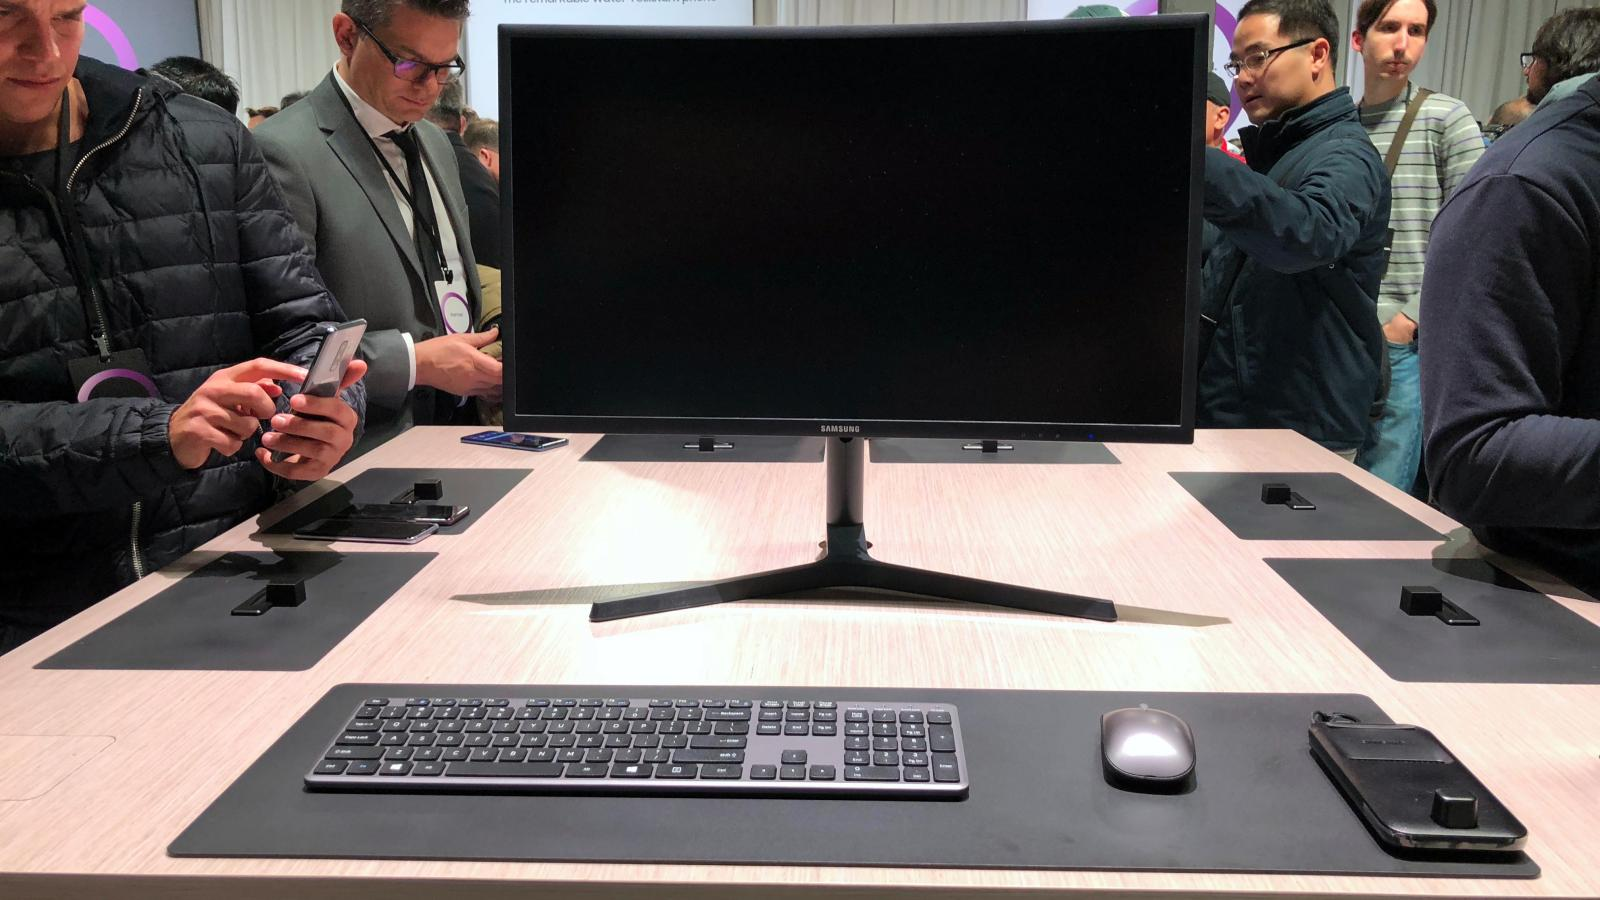 Work Computers Of The Future Could Just Be Samsung Galaxy Smartphones And Dex System Quartz At